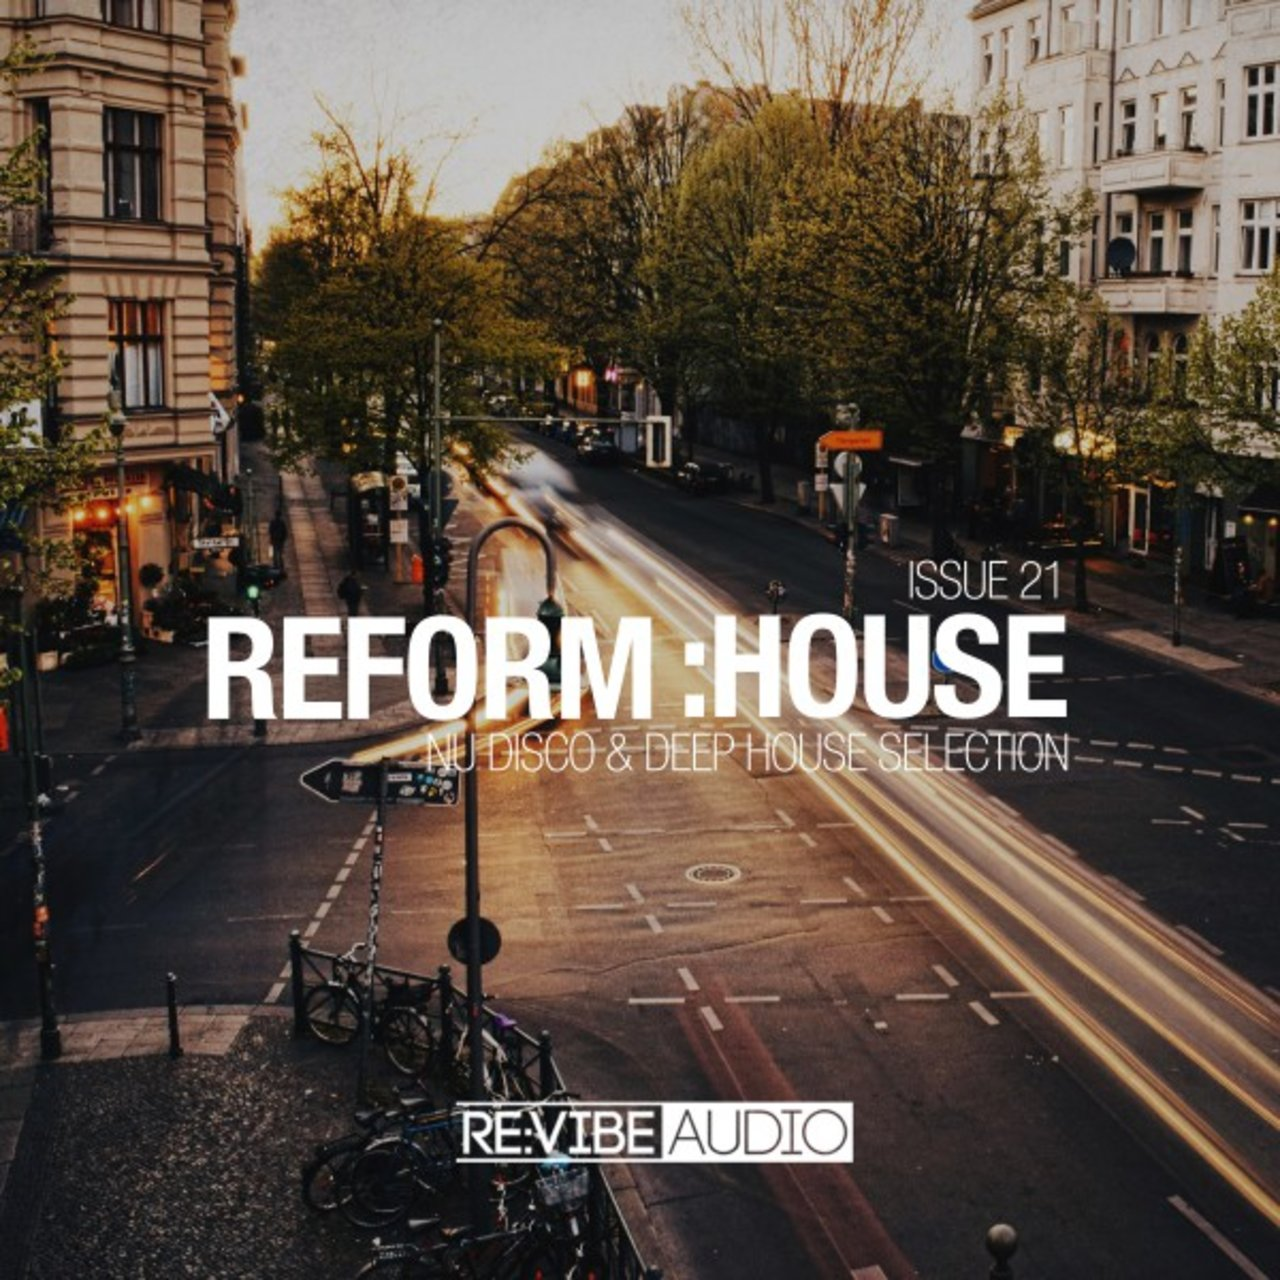 Reform:House Issue 21